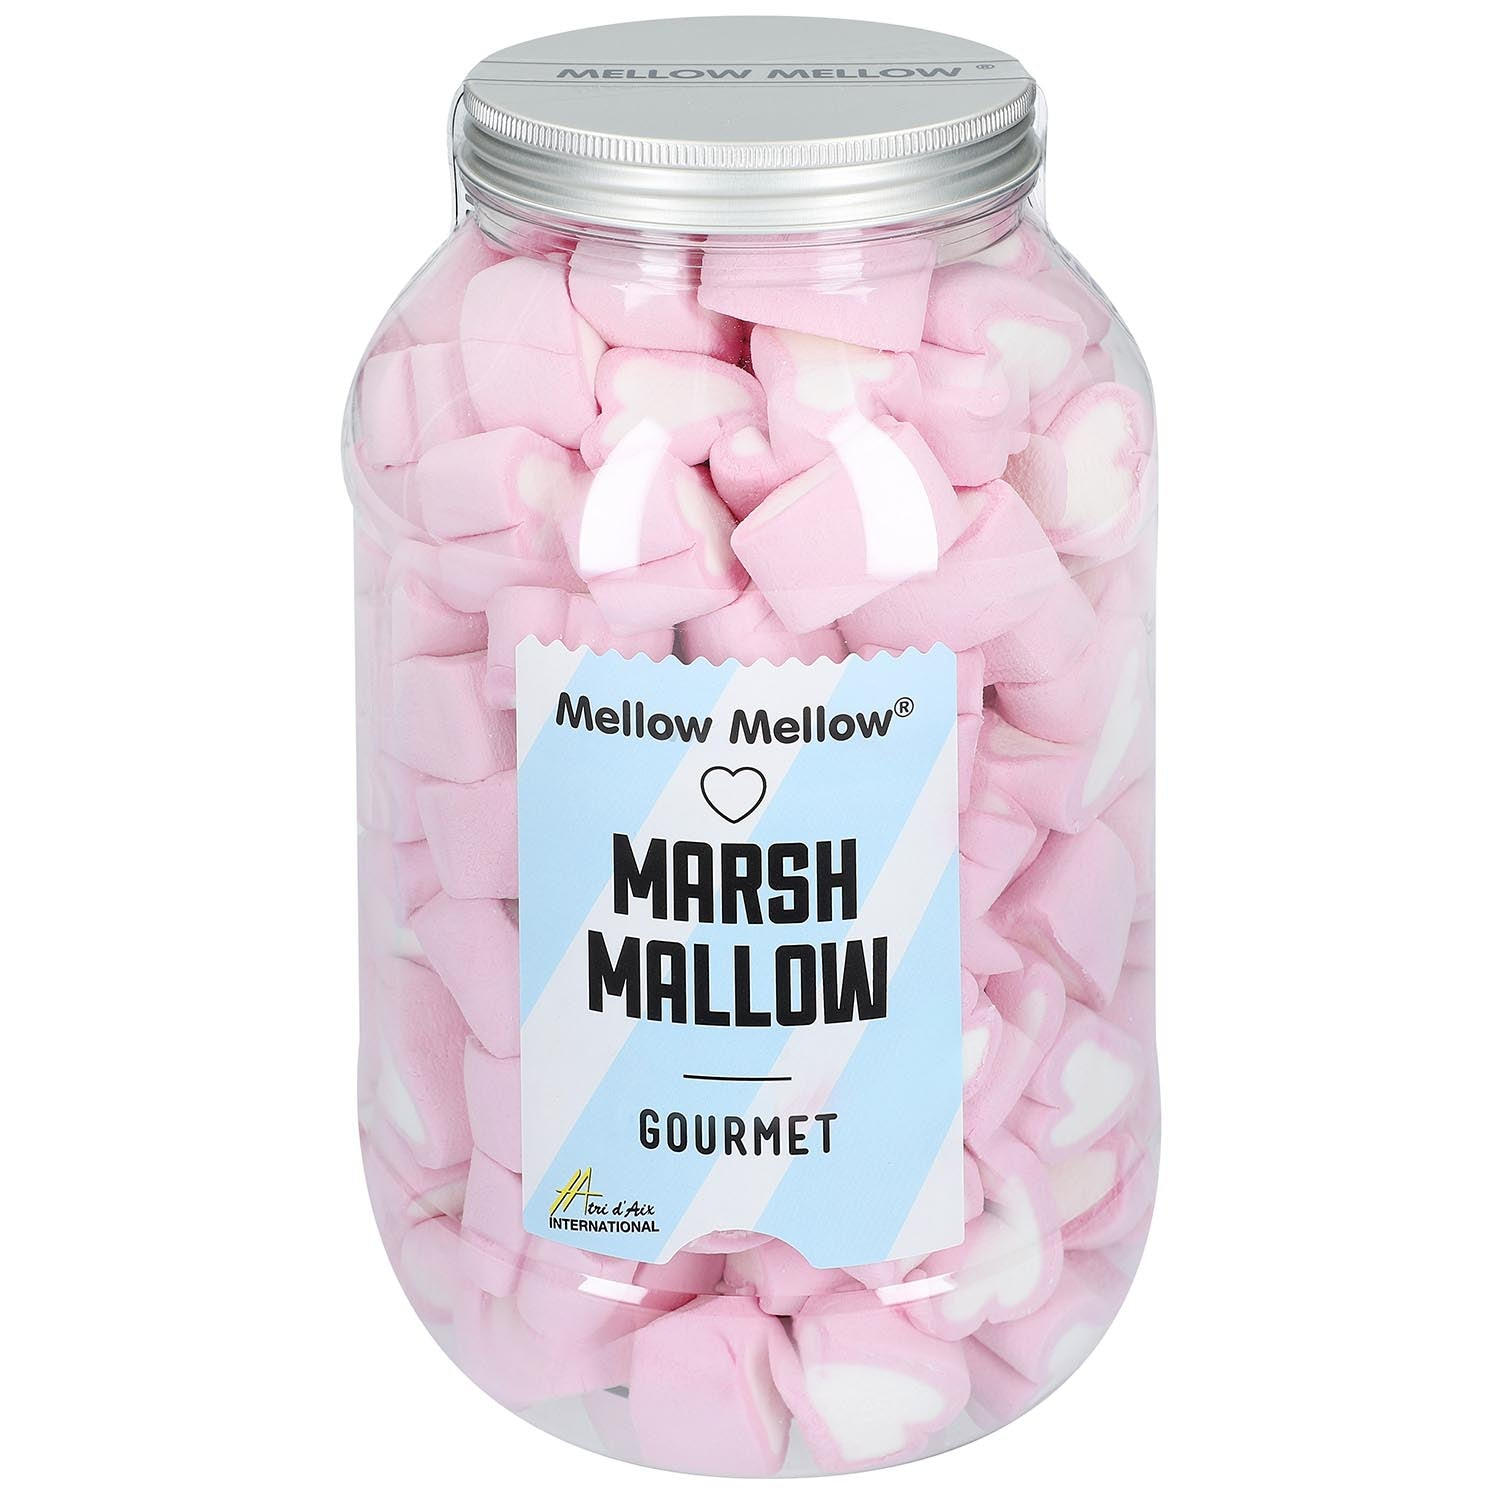 Marshmallow Herzen in Retrodose